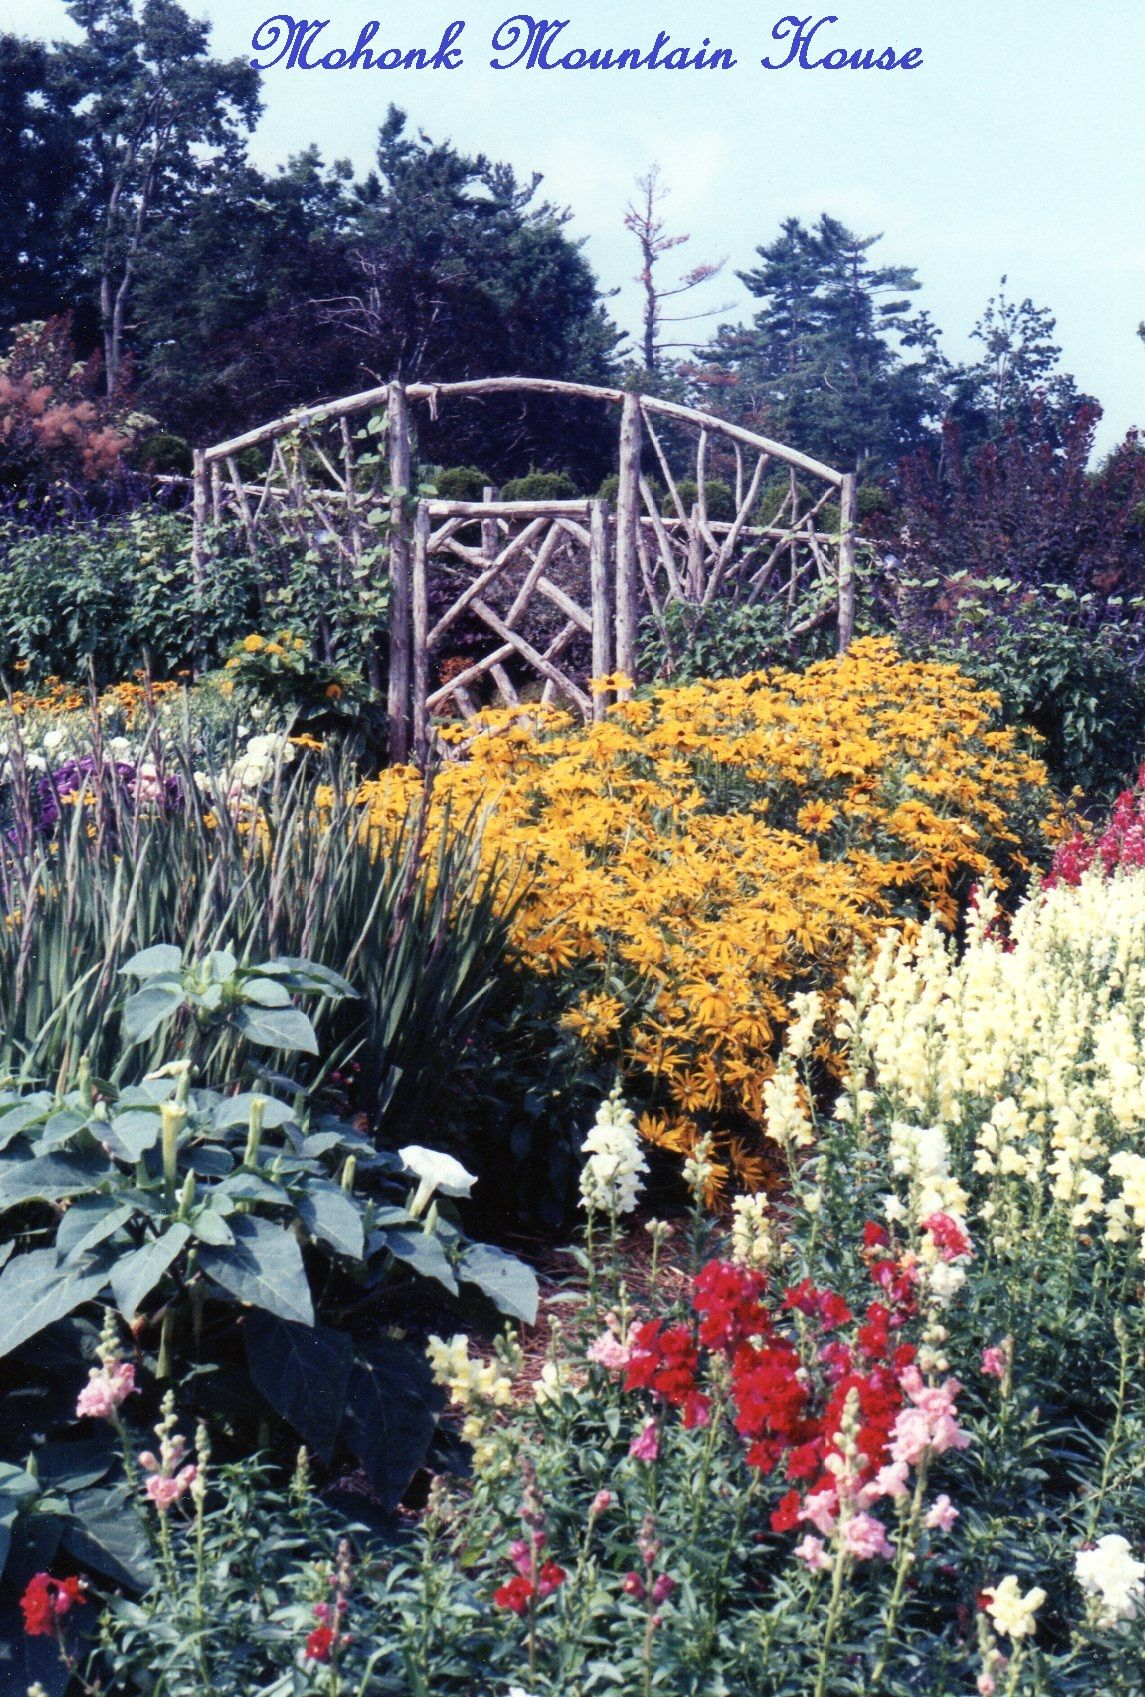 Garden with fencing made of trimmed branches mohonk